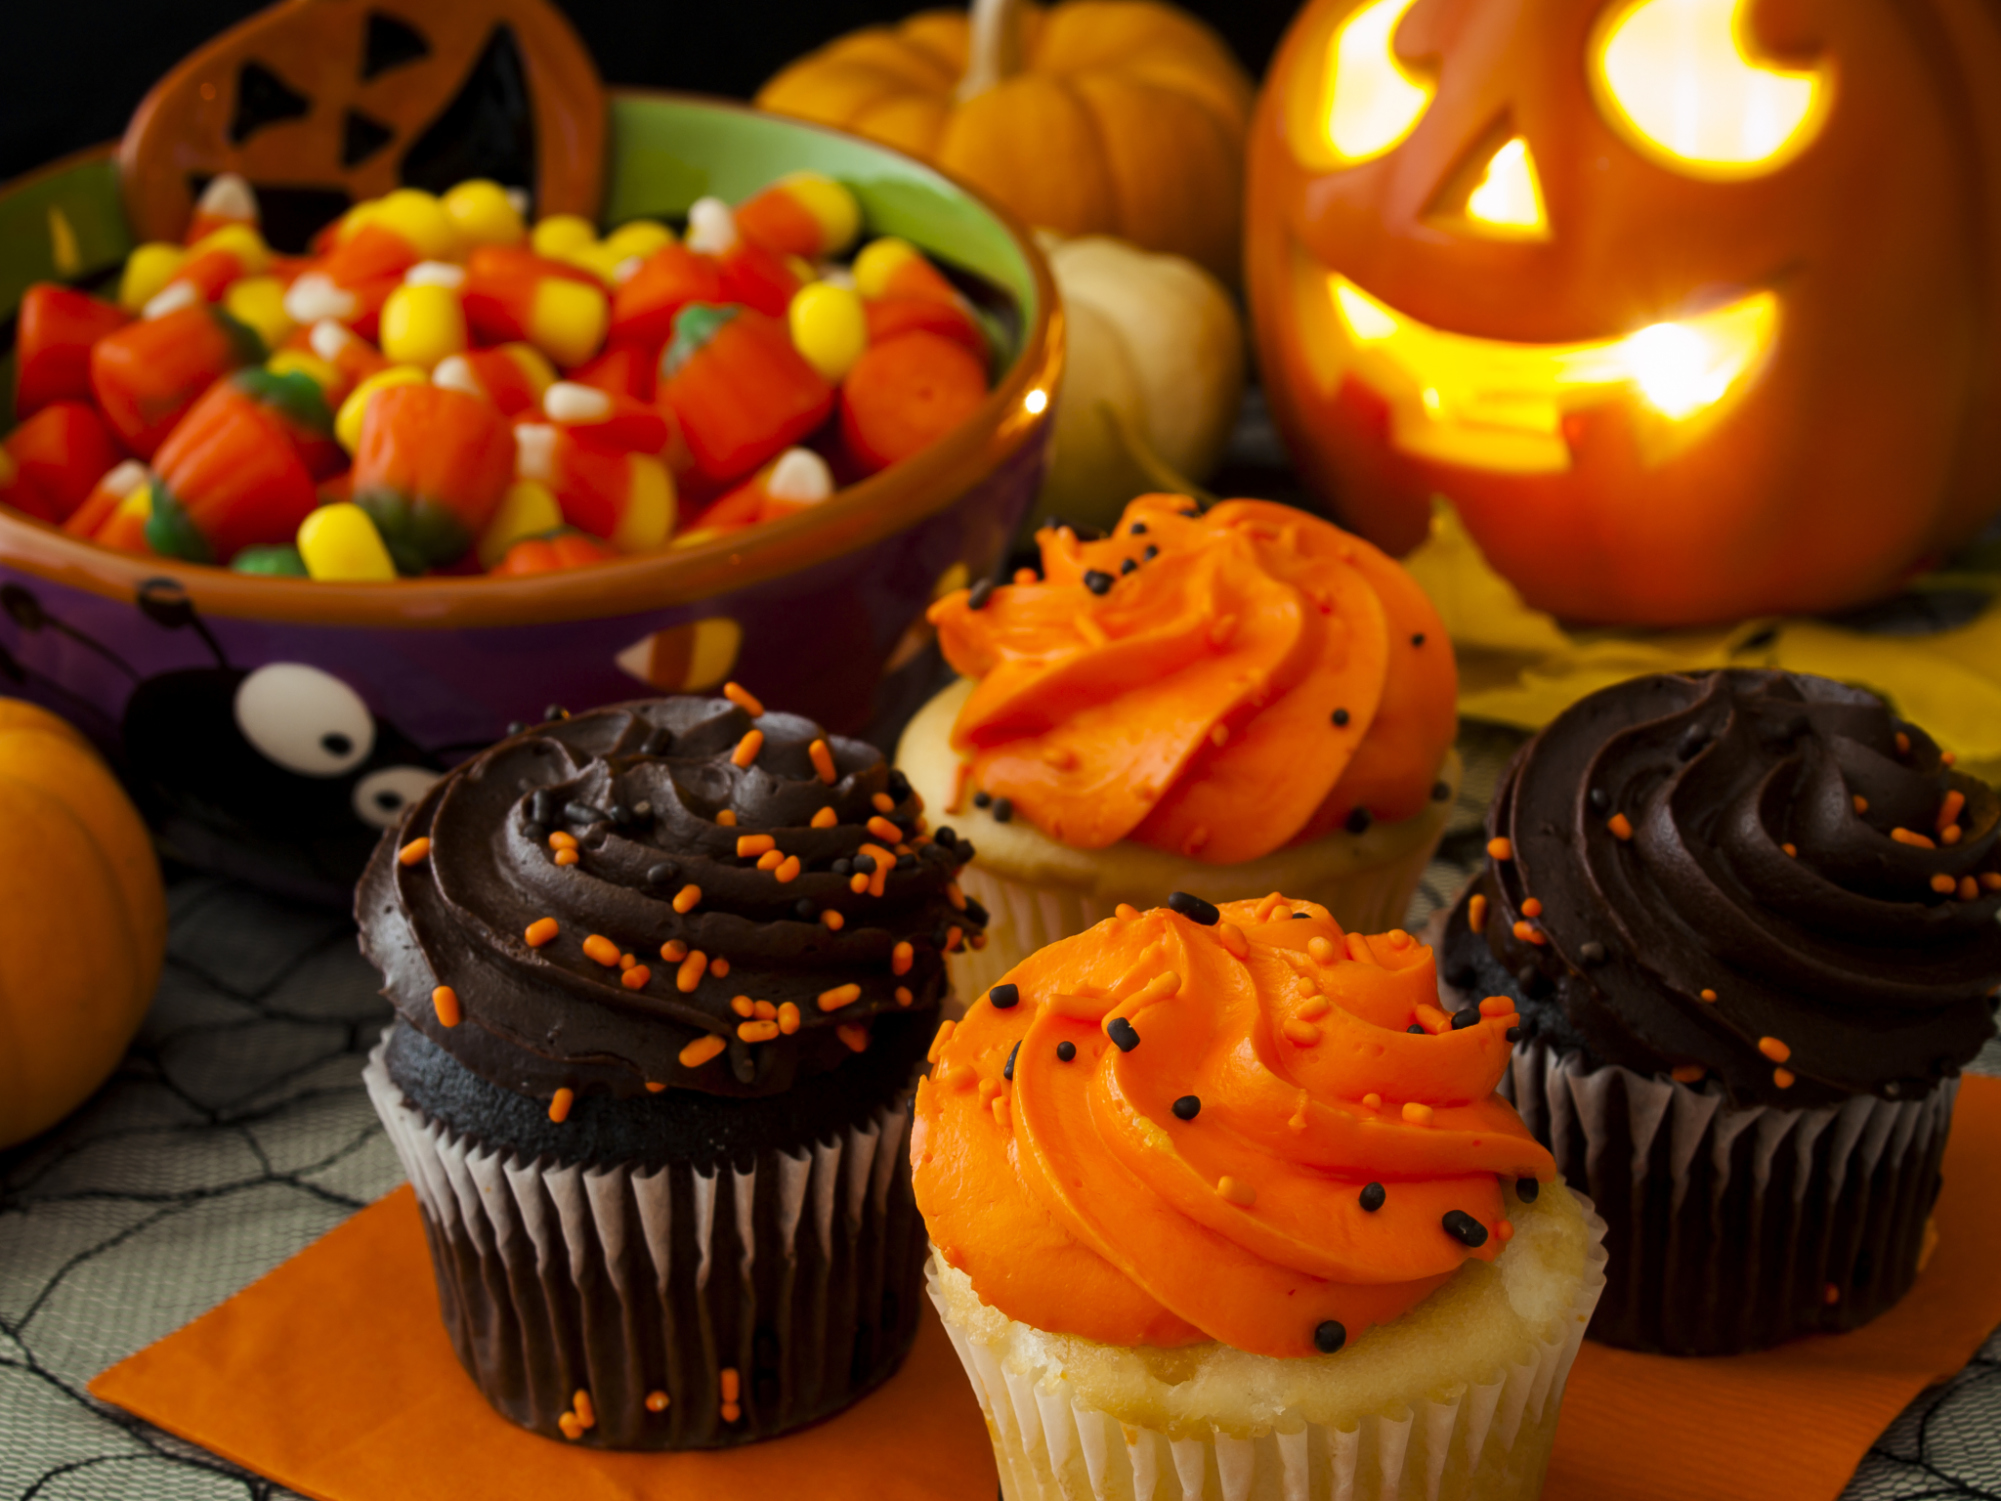 ThinkstockPhotos 178564205 Decorate Your Home for Halloween